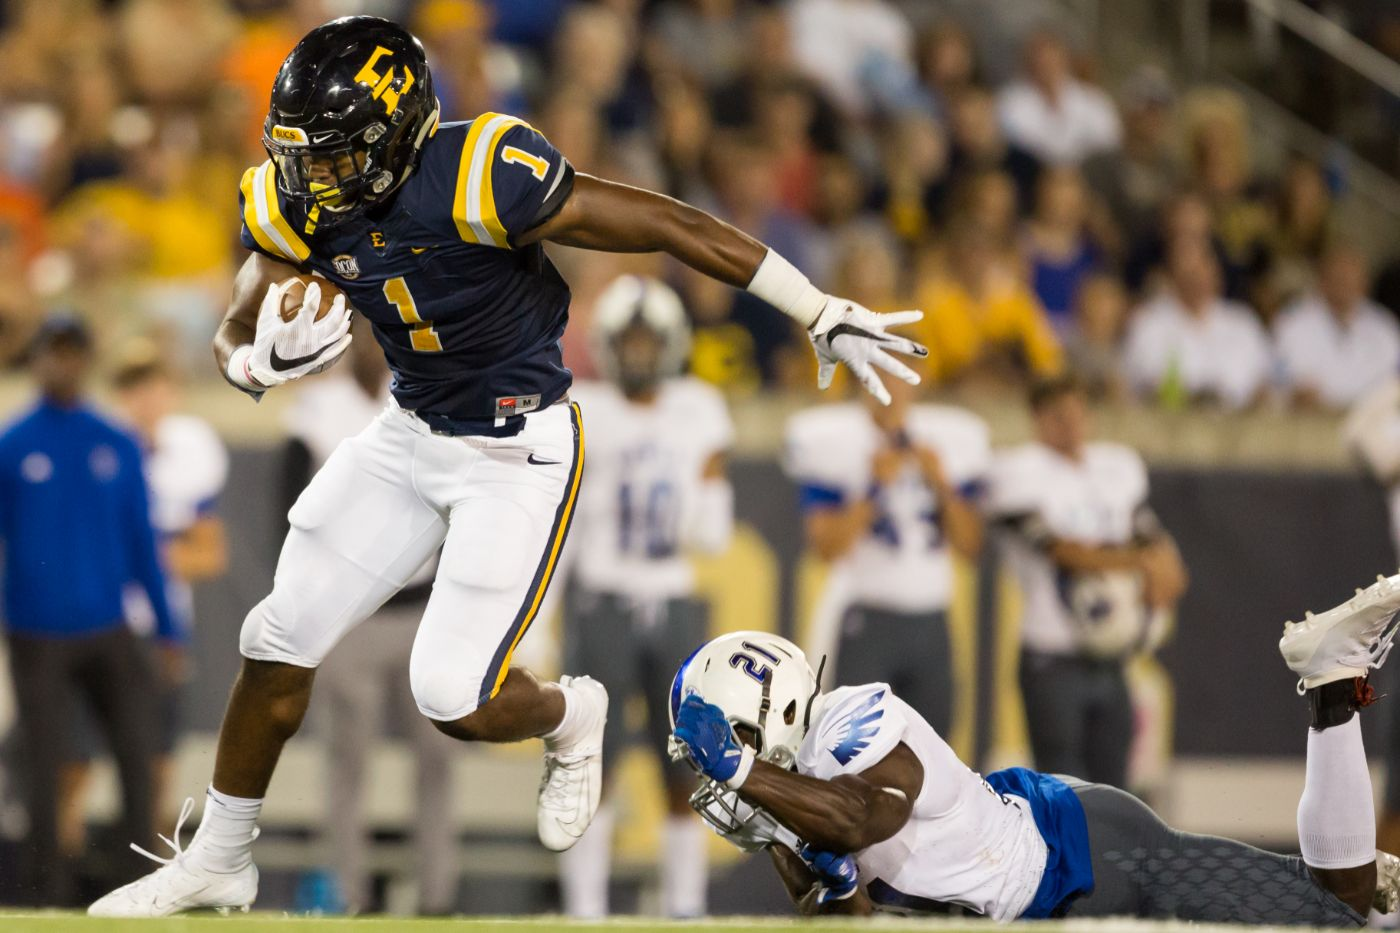 Holmes Named STATS Perform FCS First Team All-American